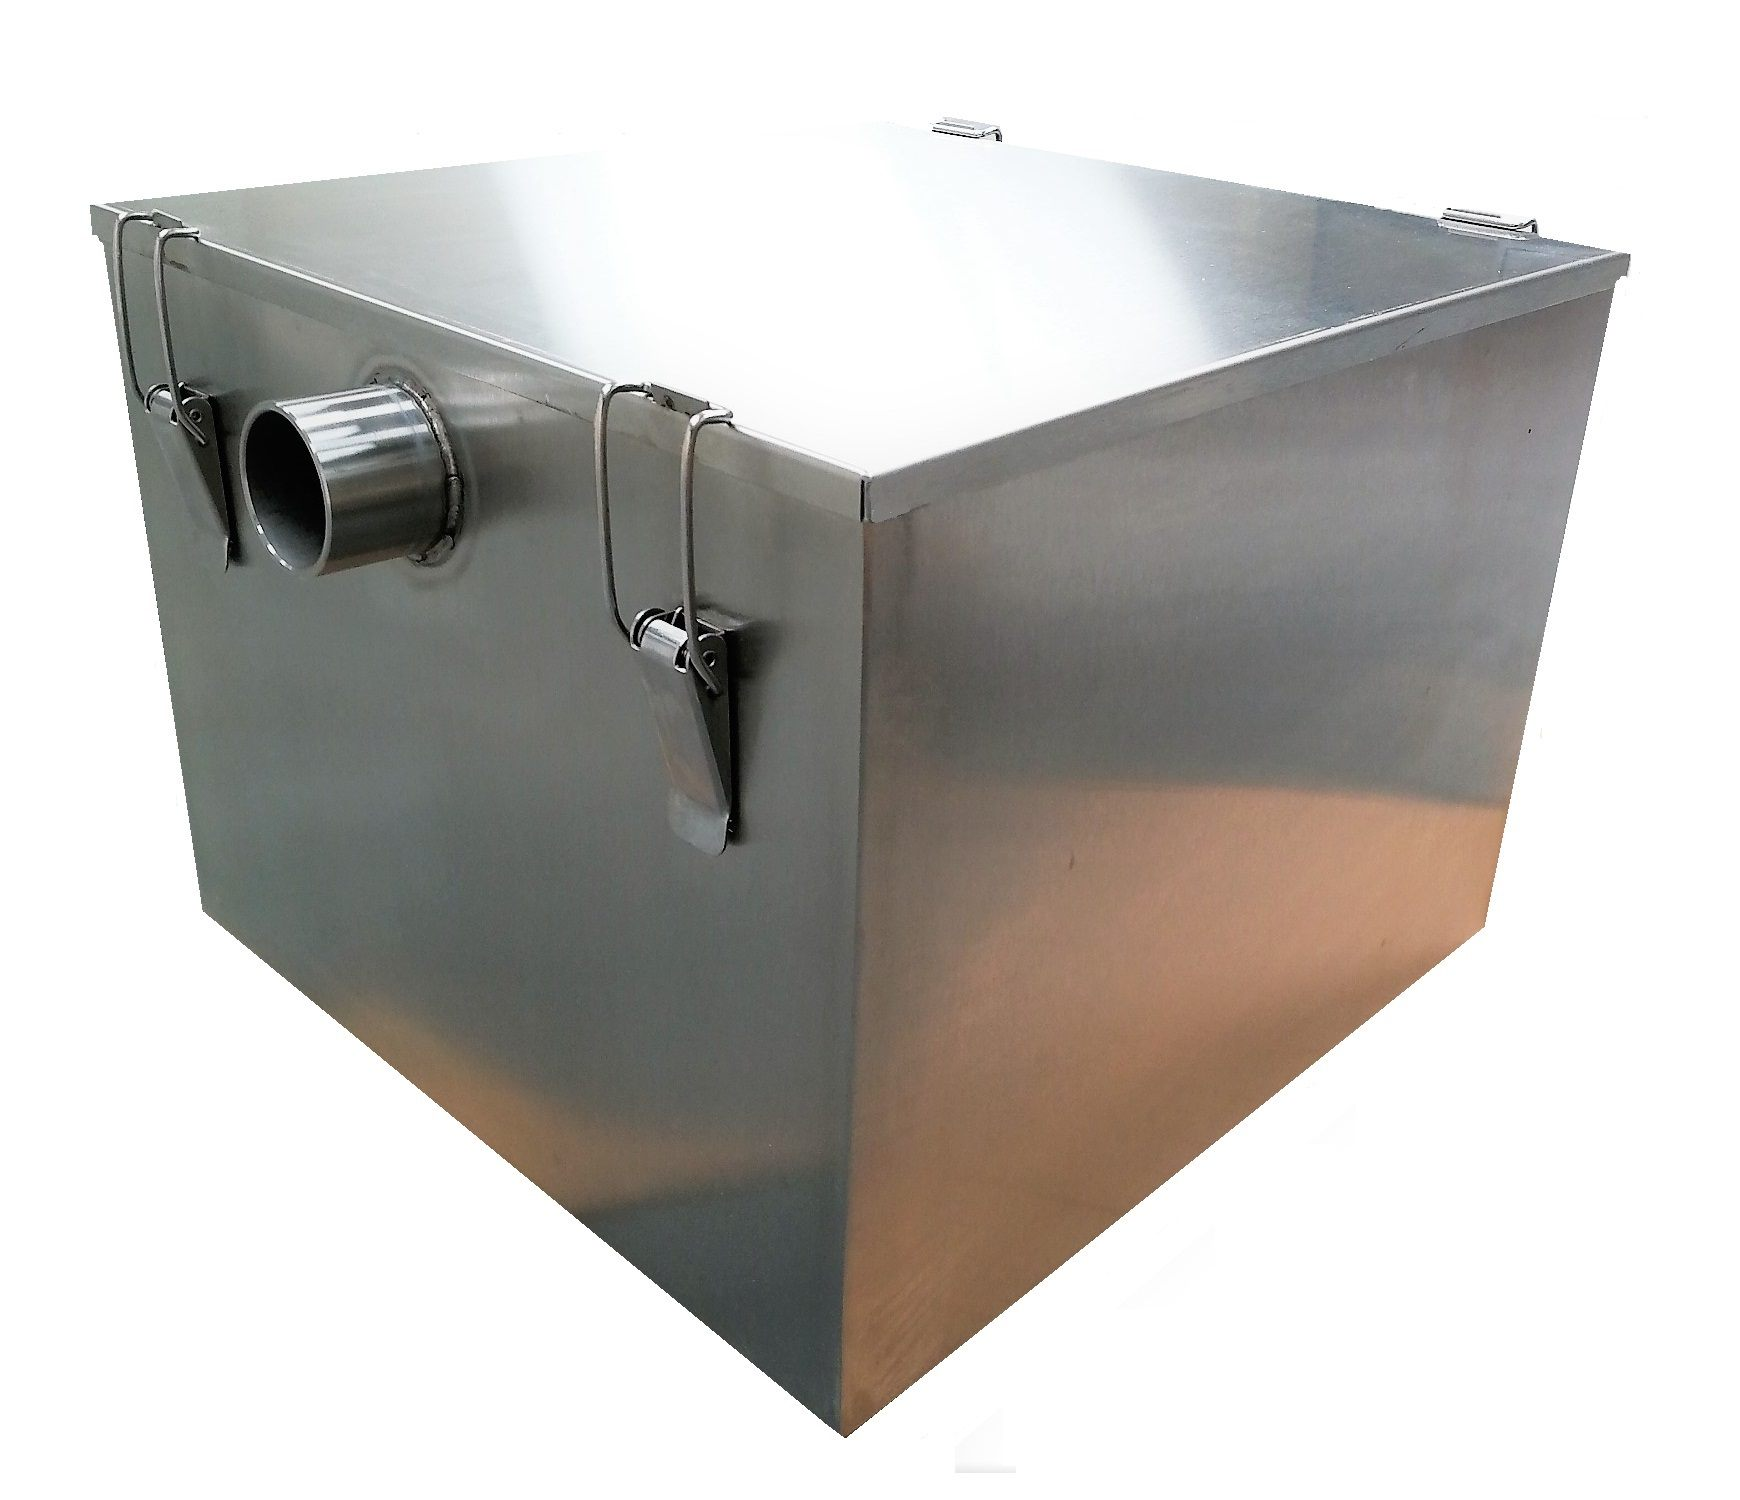 Ltr stainless steel grease trap